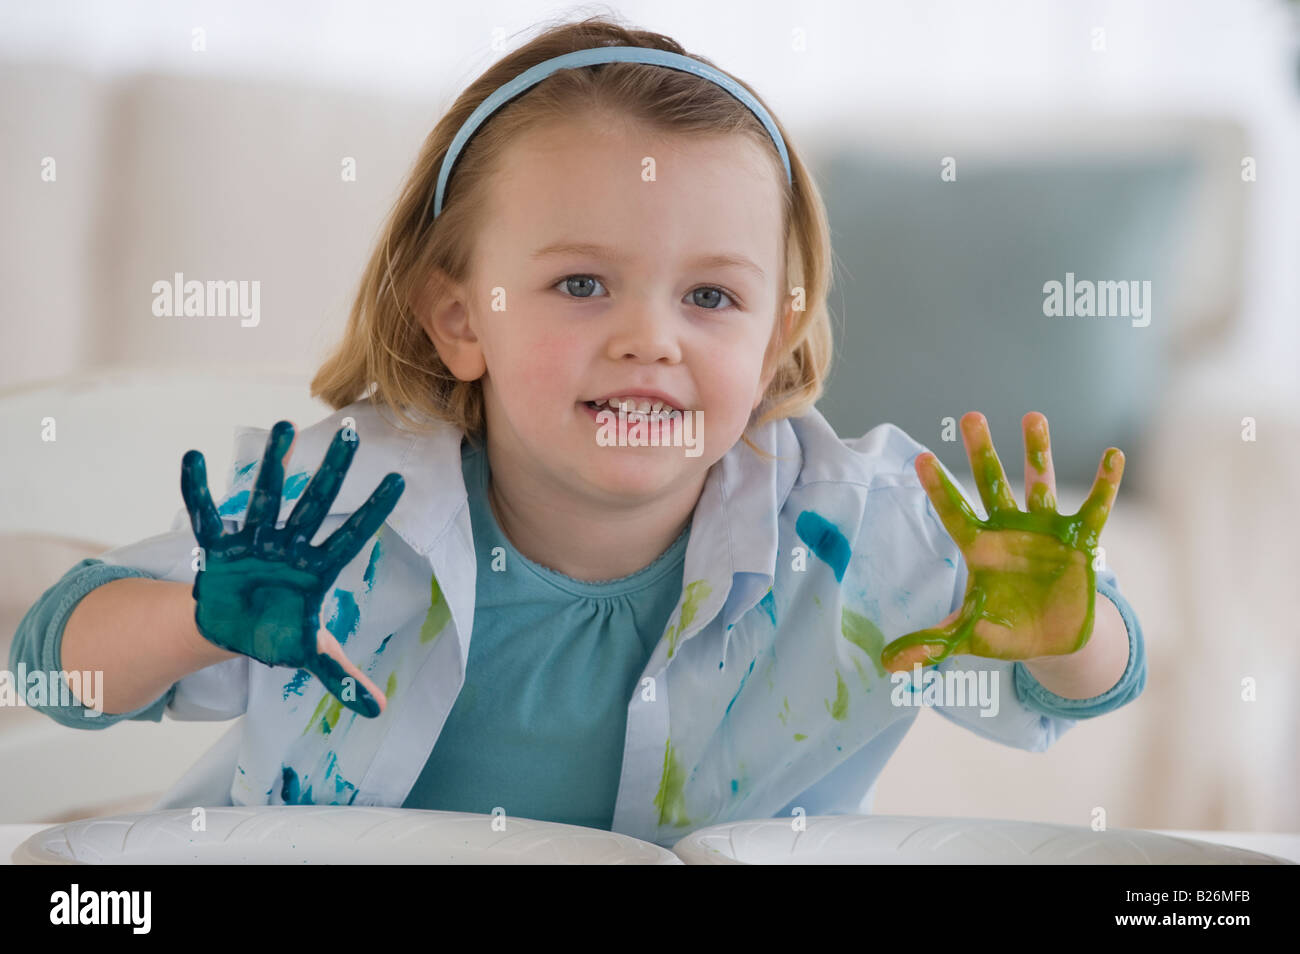 Girl finger painting with different colors - Stock Image